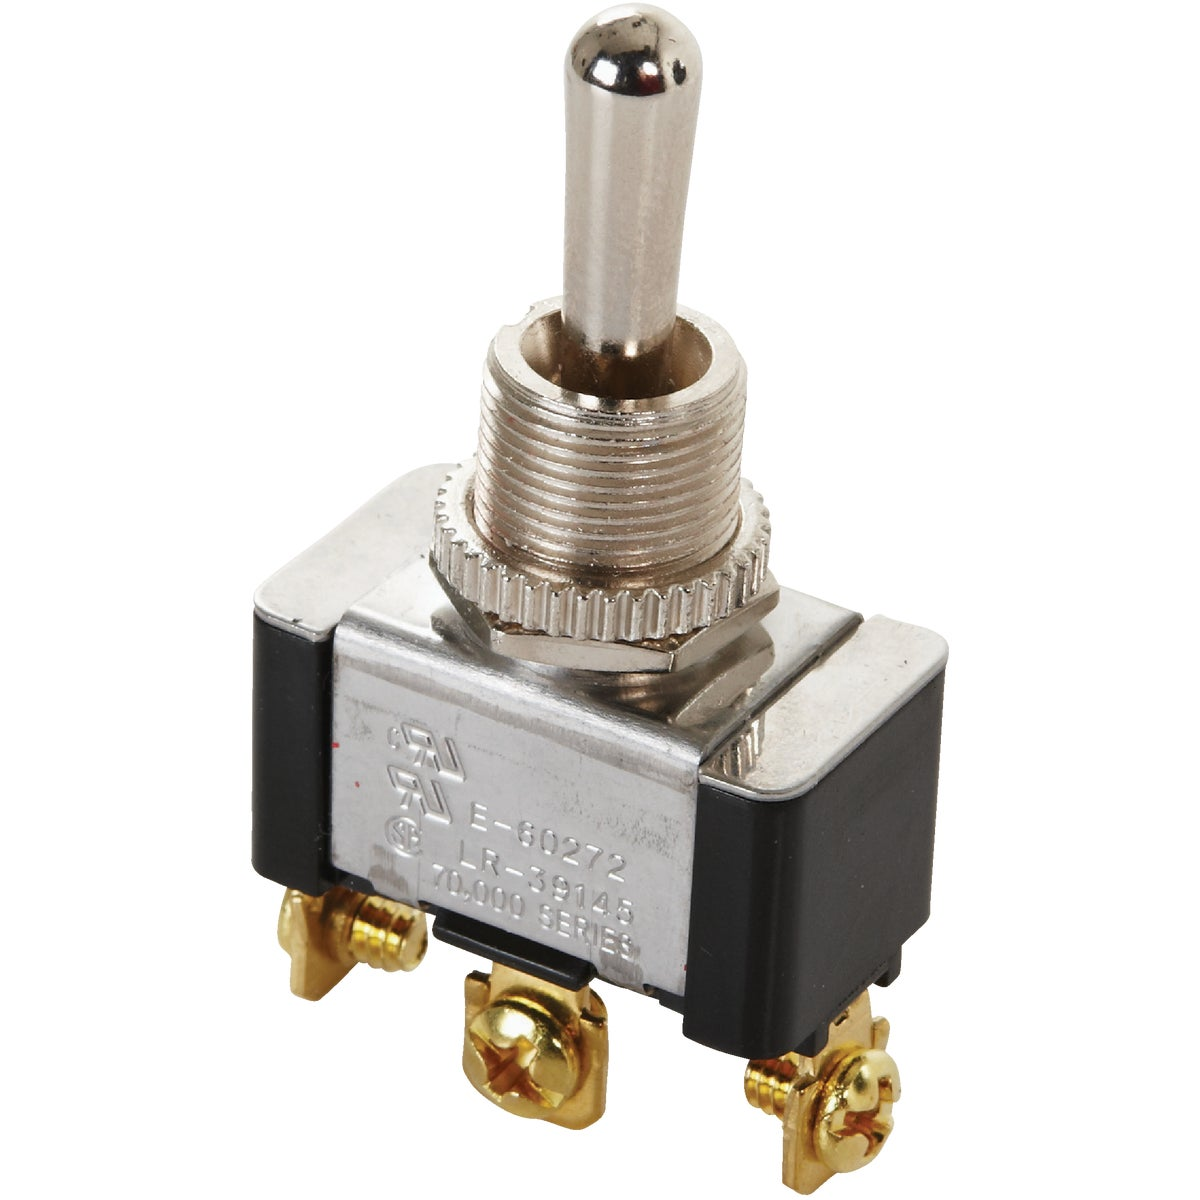 HEAVY DUTY TOGGLE SWITCH - GSW-117 by G B Electrical Inc